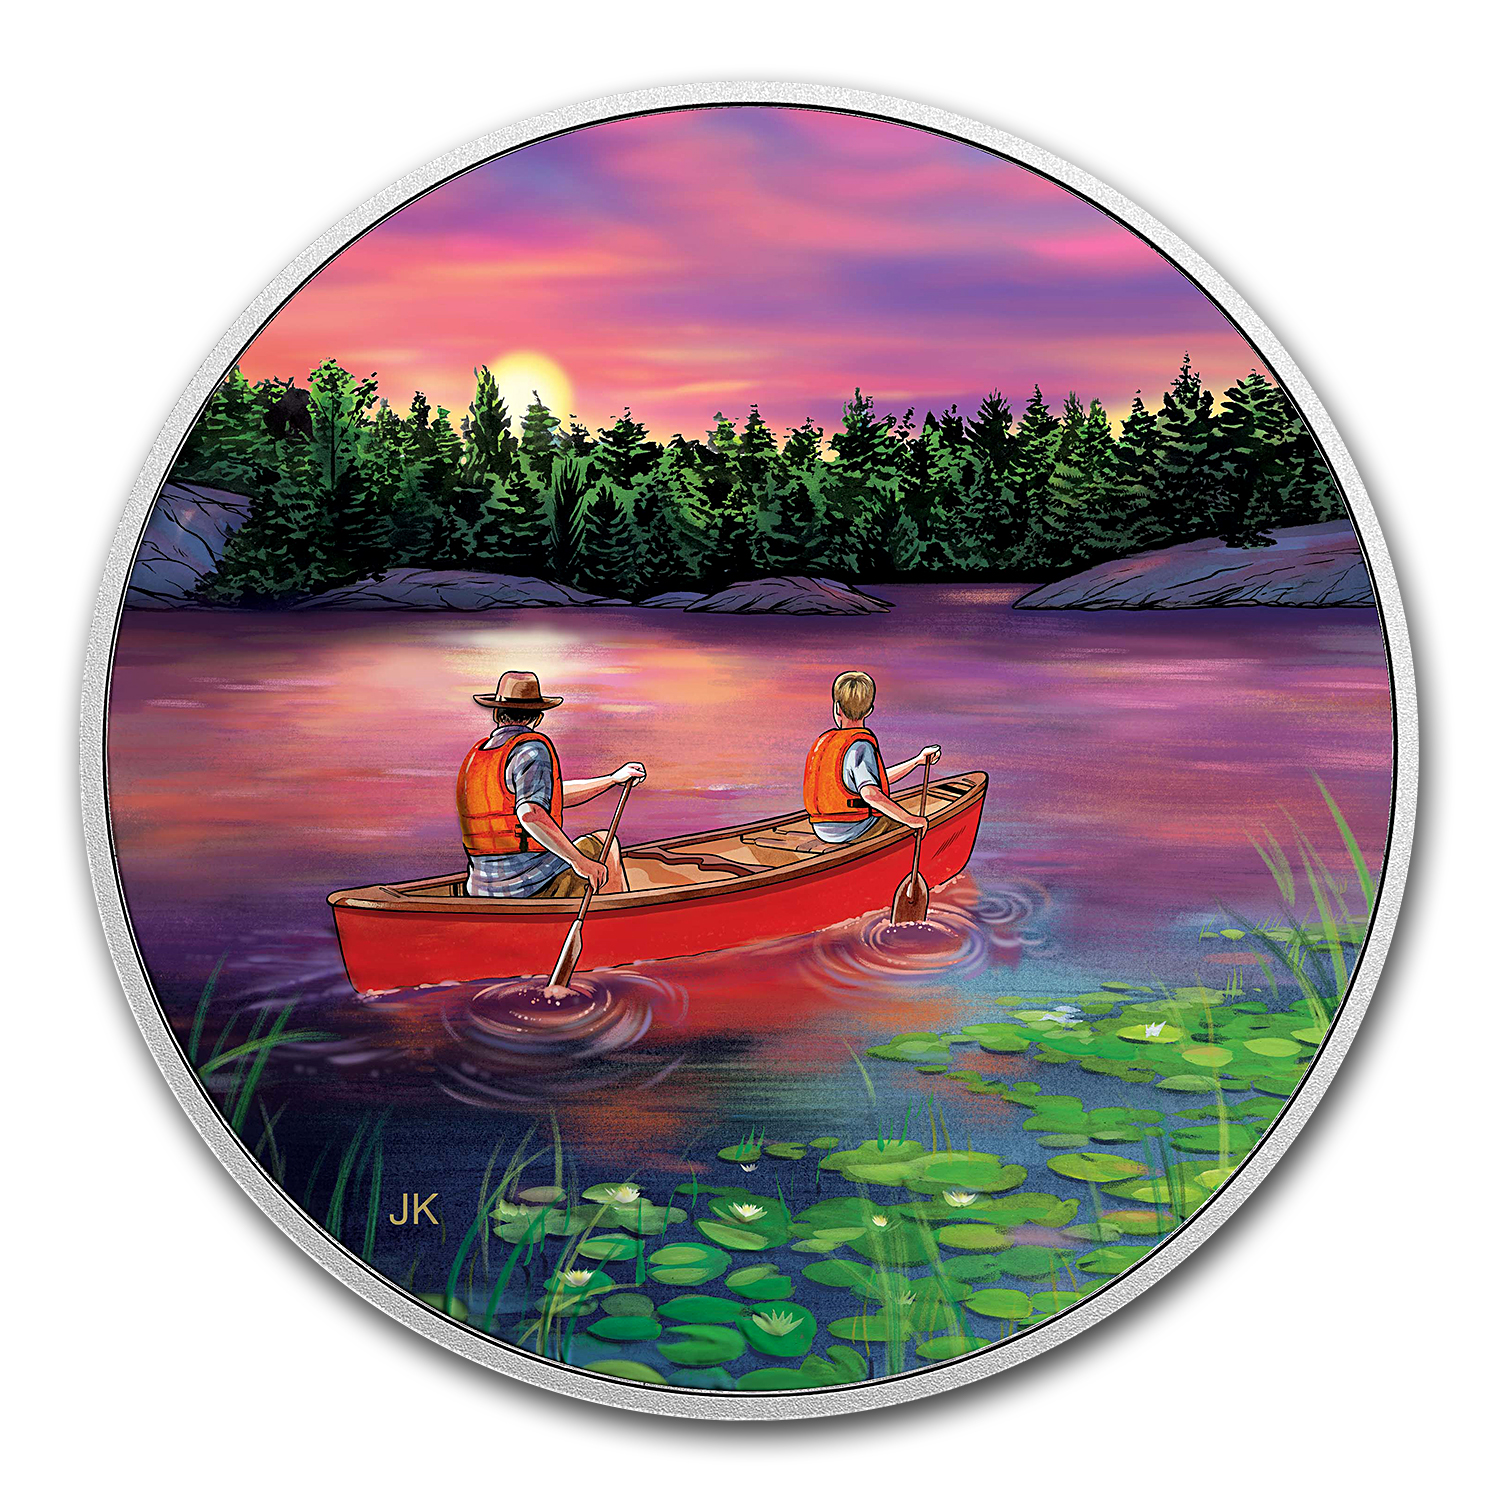 2017 RCM 3/4 oz Ag $15 Great Canadian Outdoors: Sunset Canoeing